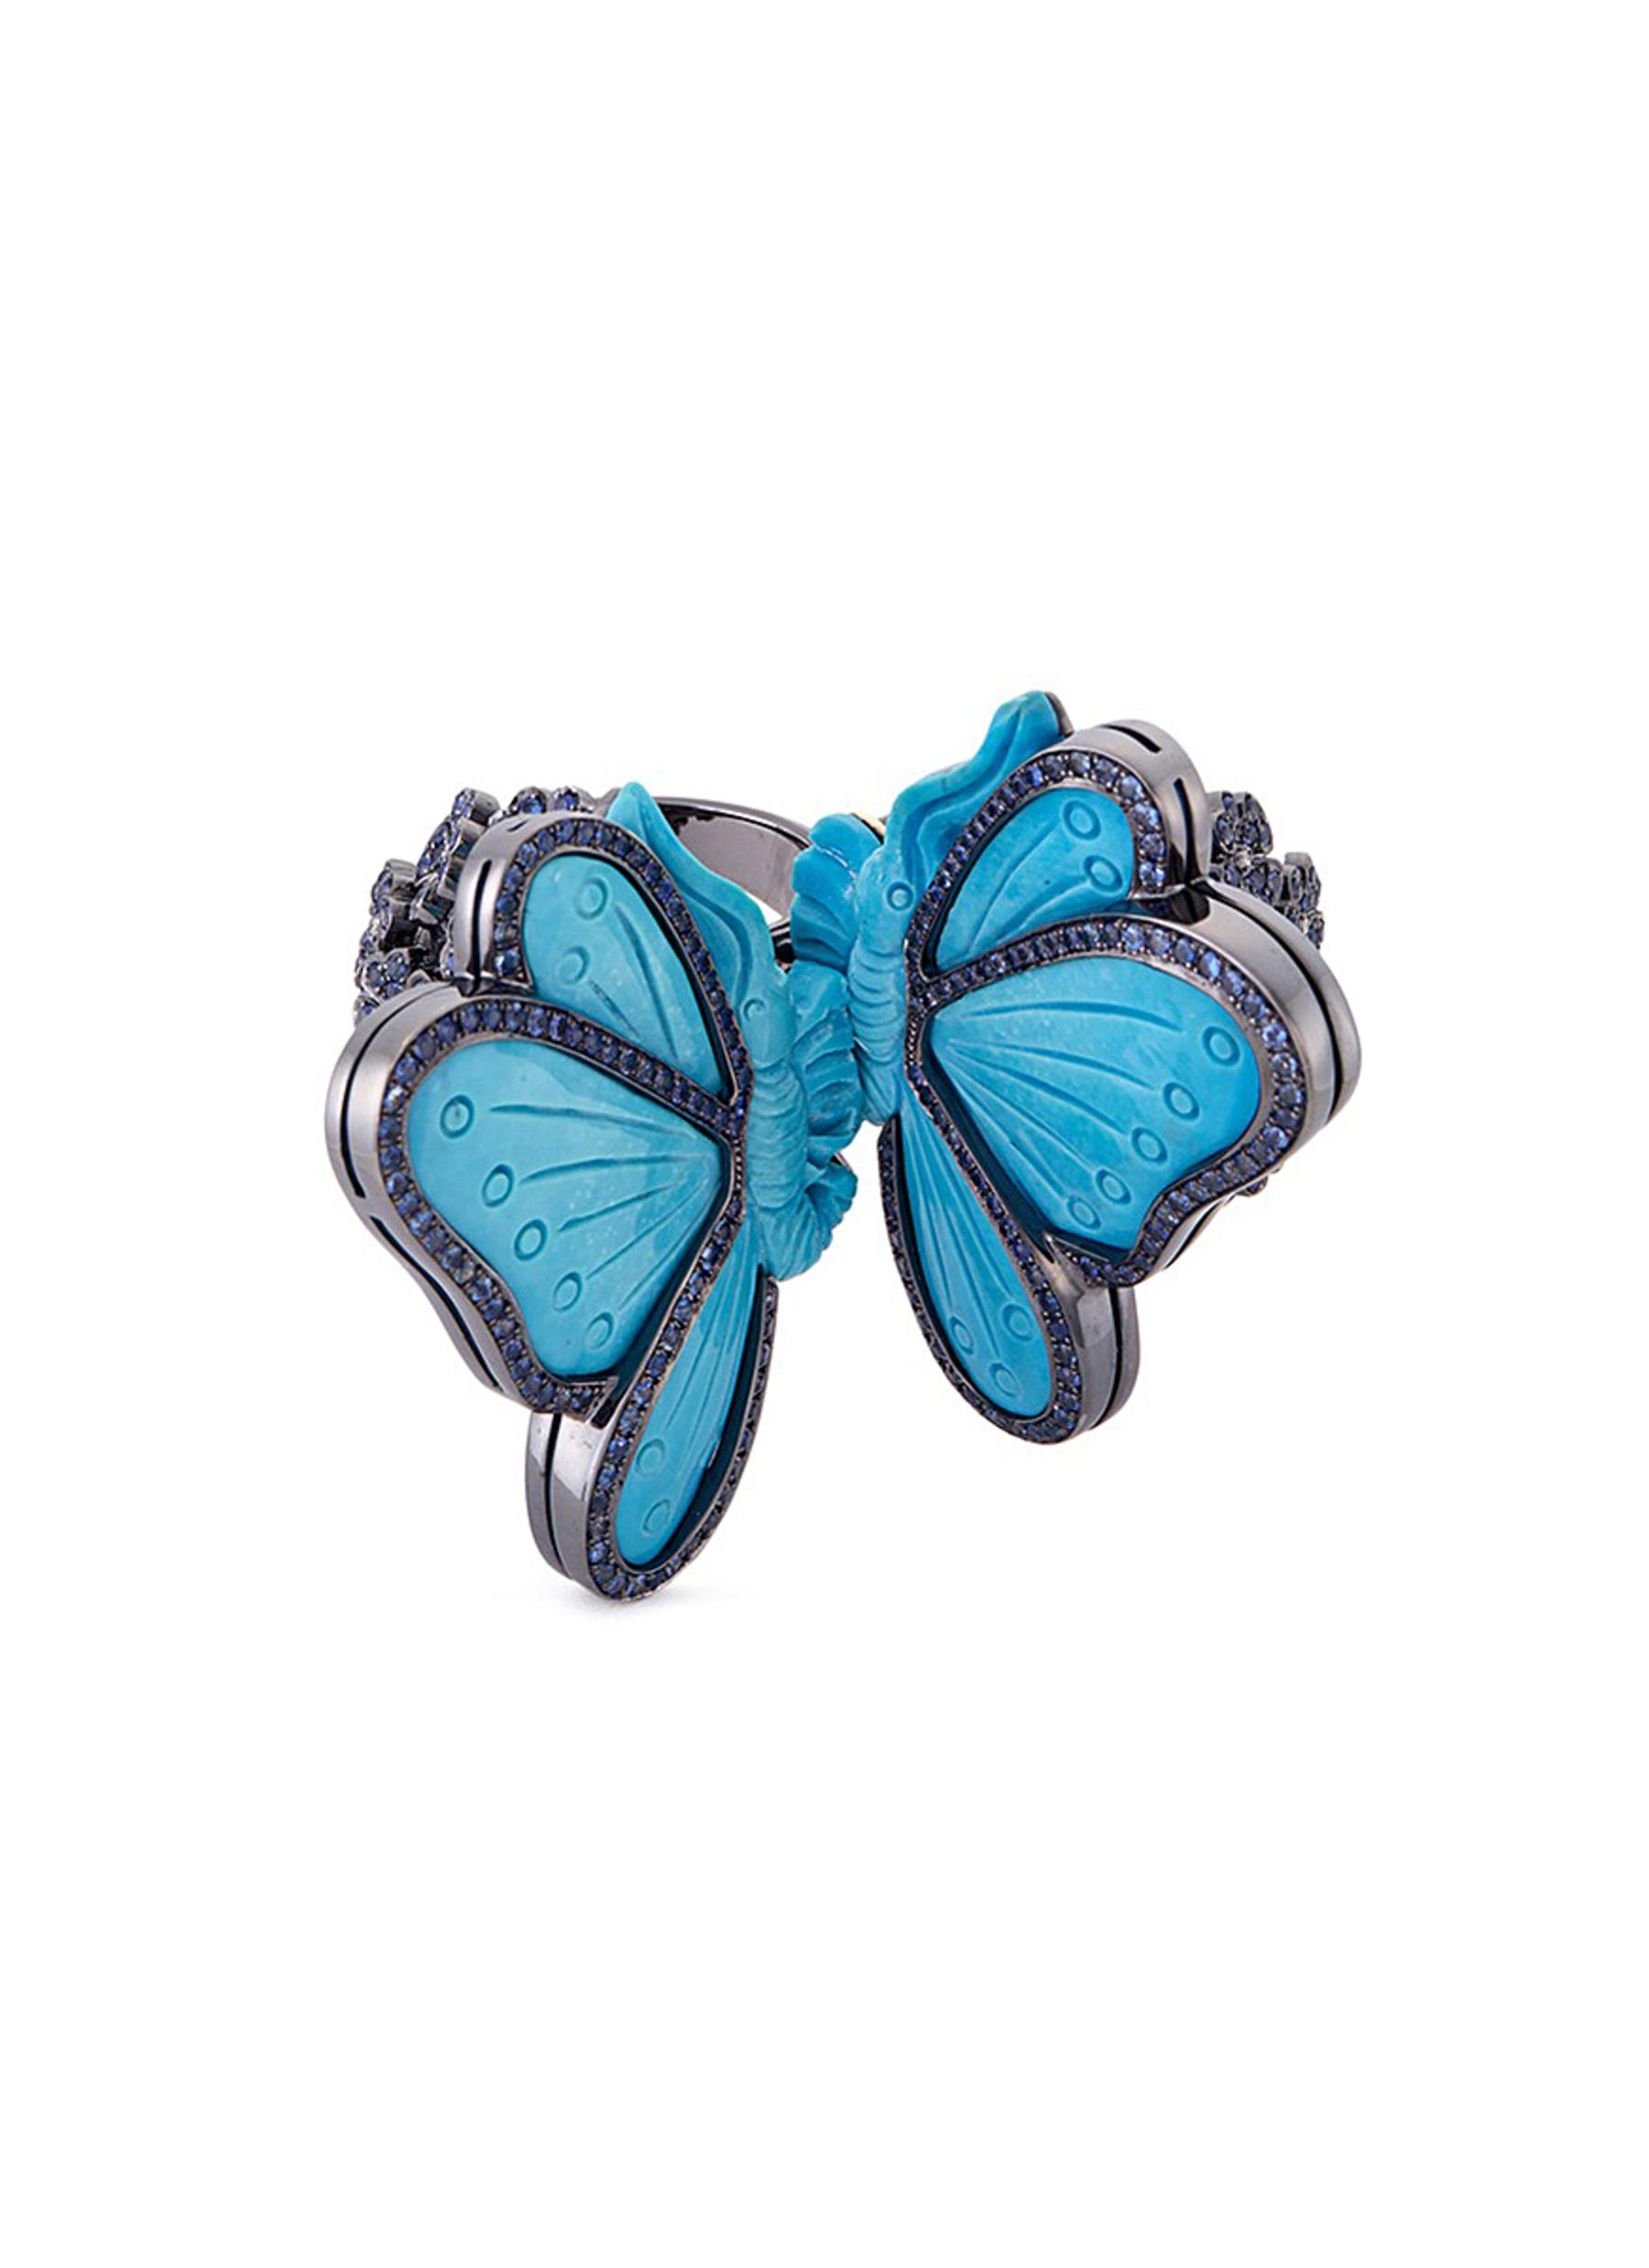 LYDIA COURTEILLE Diamond sapphire turquoise 18k gold butterfly two finger ring